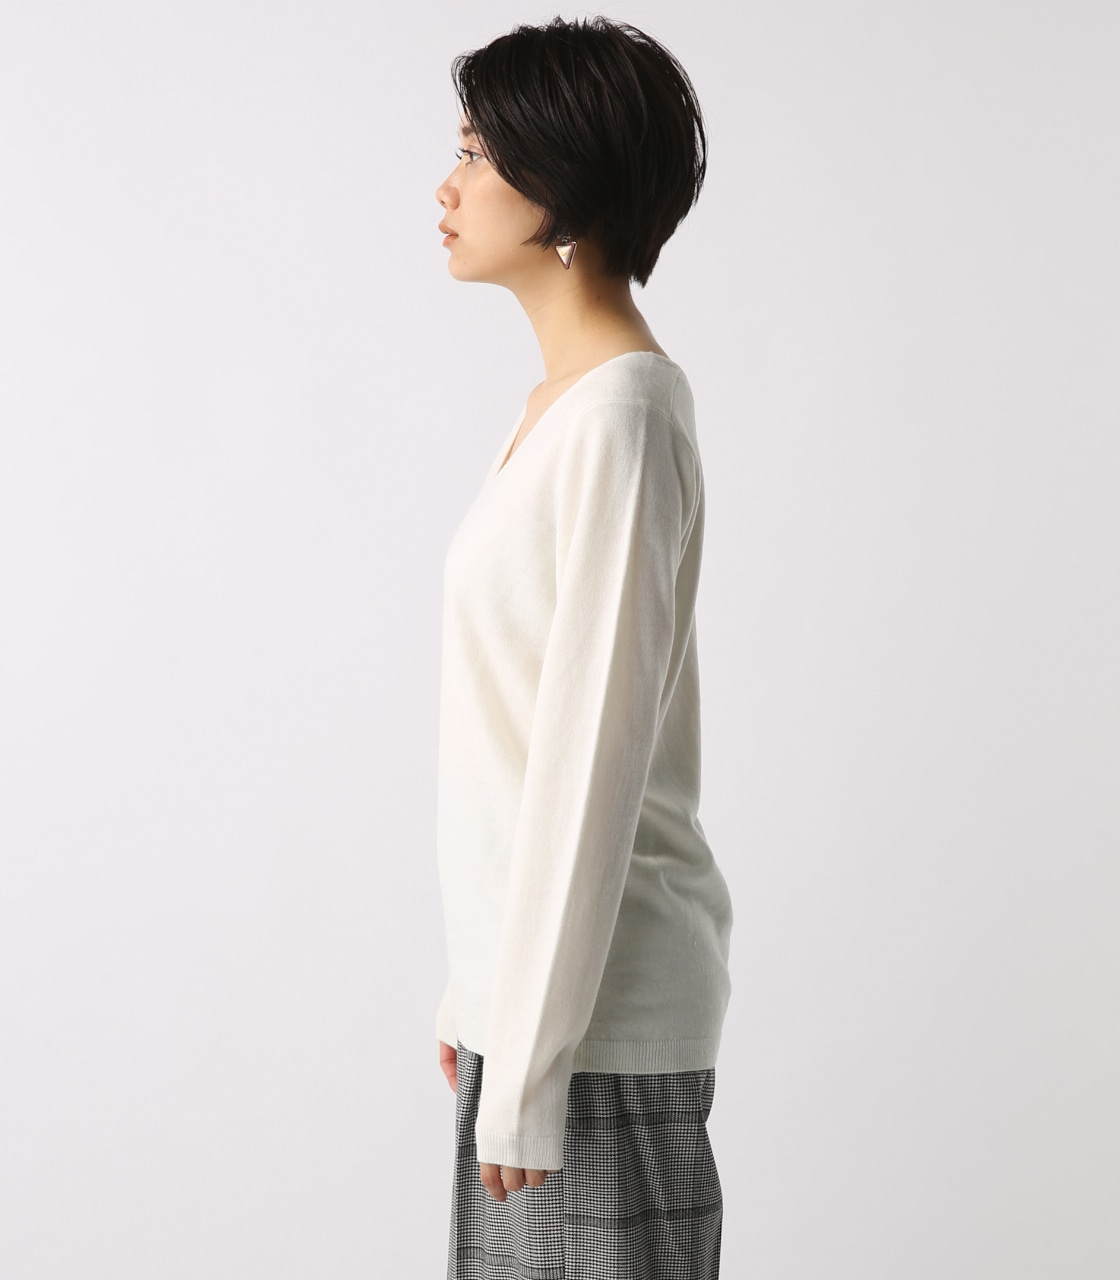 【AZUL BY MOUSSY】ウォッシャブルソフトタッチVネック長袖プルオーバー [MOOK掲載]  97011 詳細画像 O/WHT 6